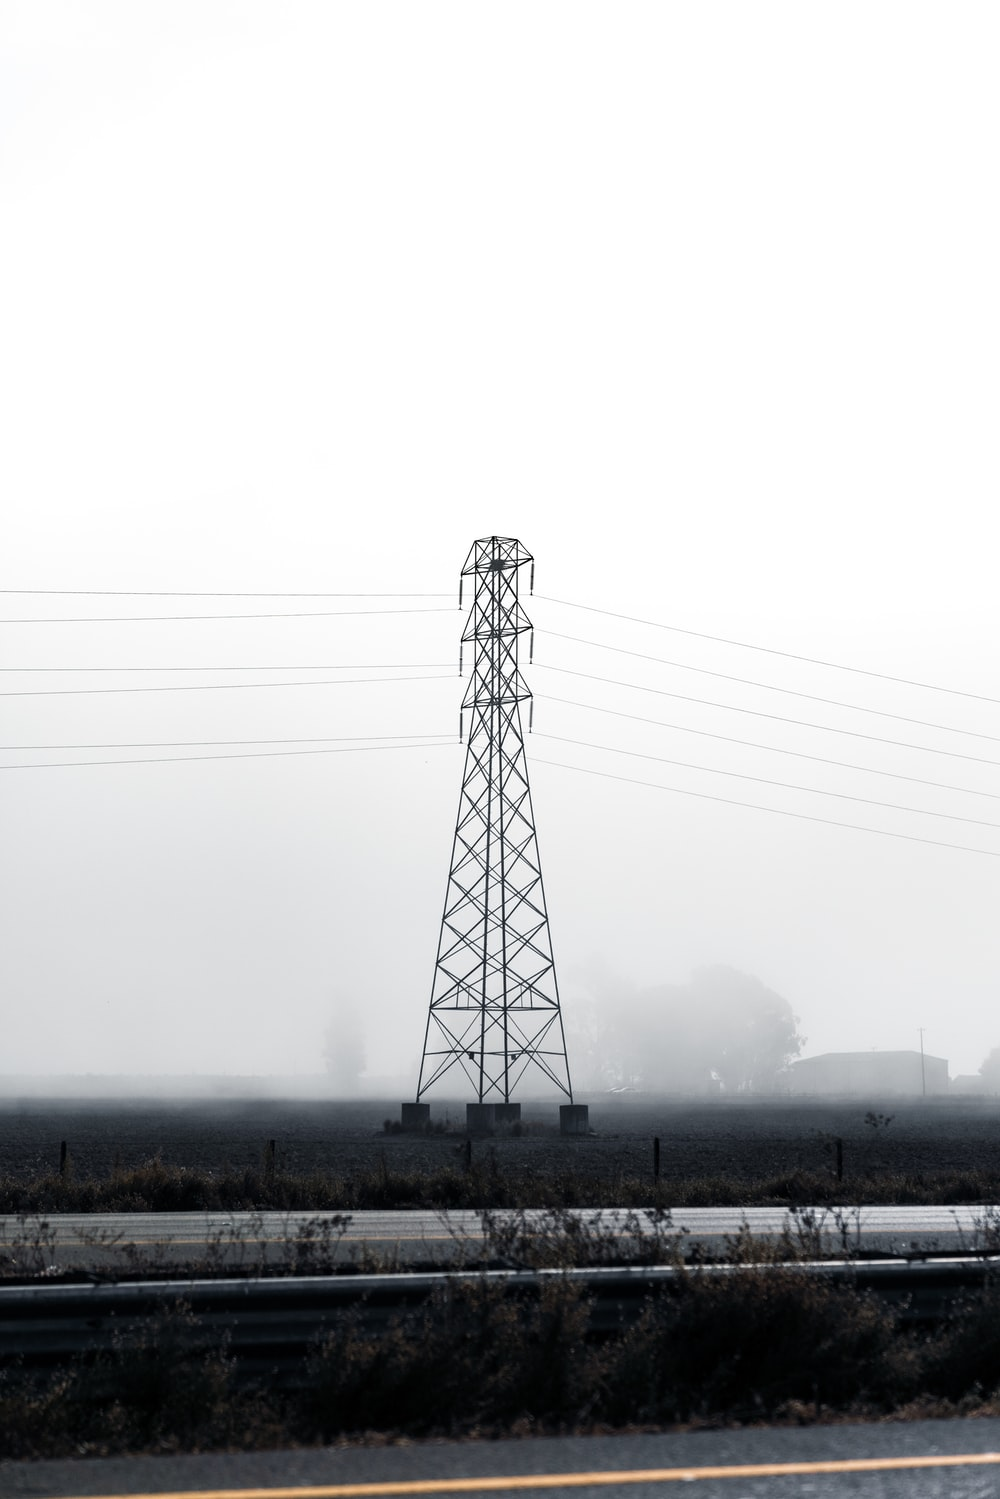 landscape photography of an electric tower under a calm white sky